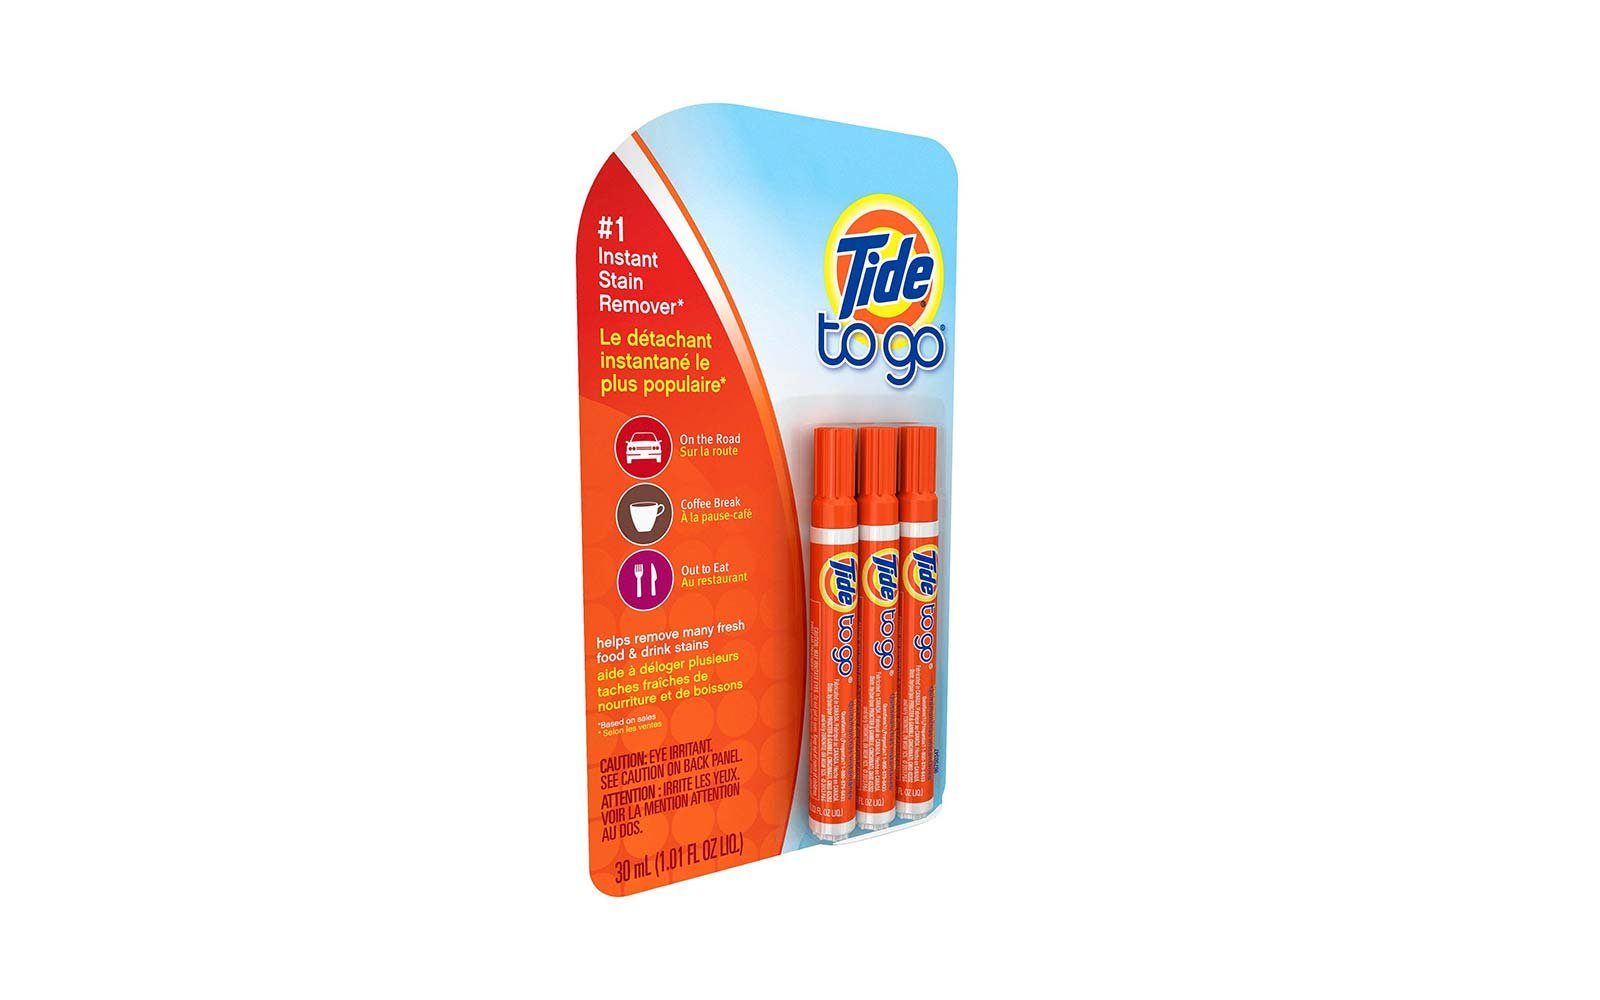 Travel Packing Essentials Tide To Go Detergent Pen